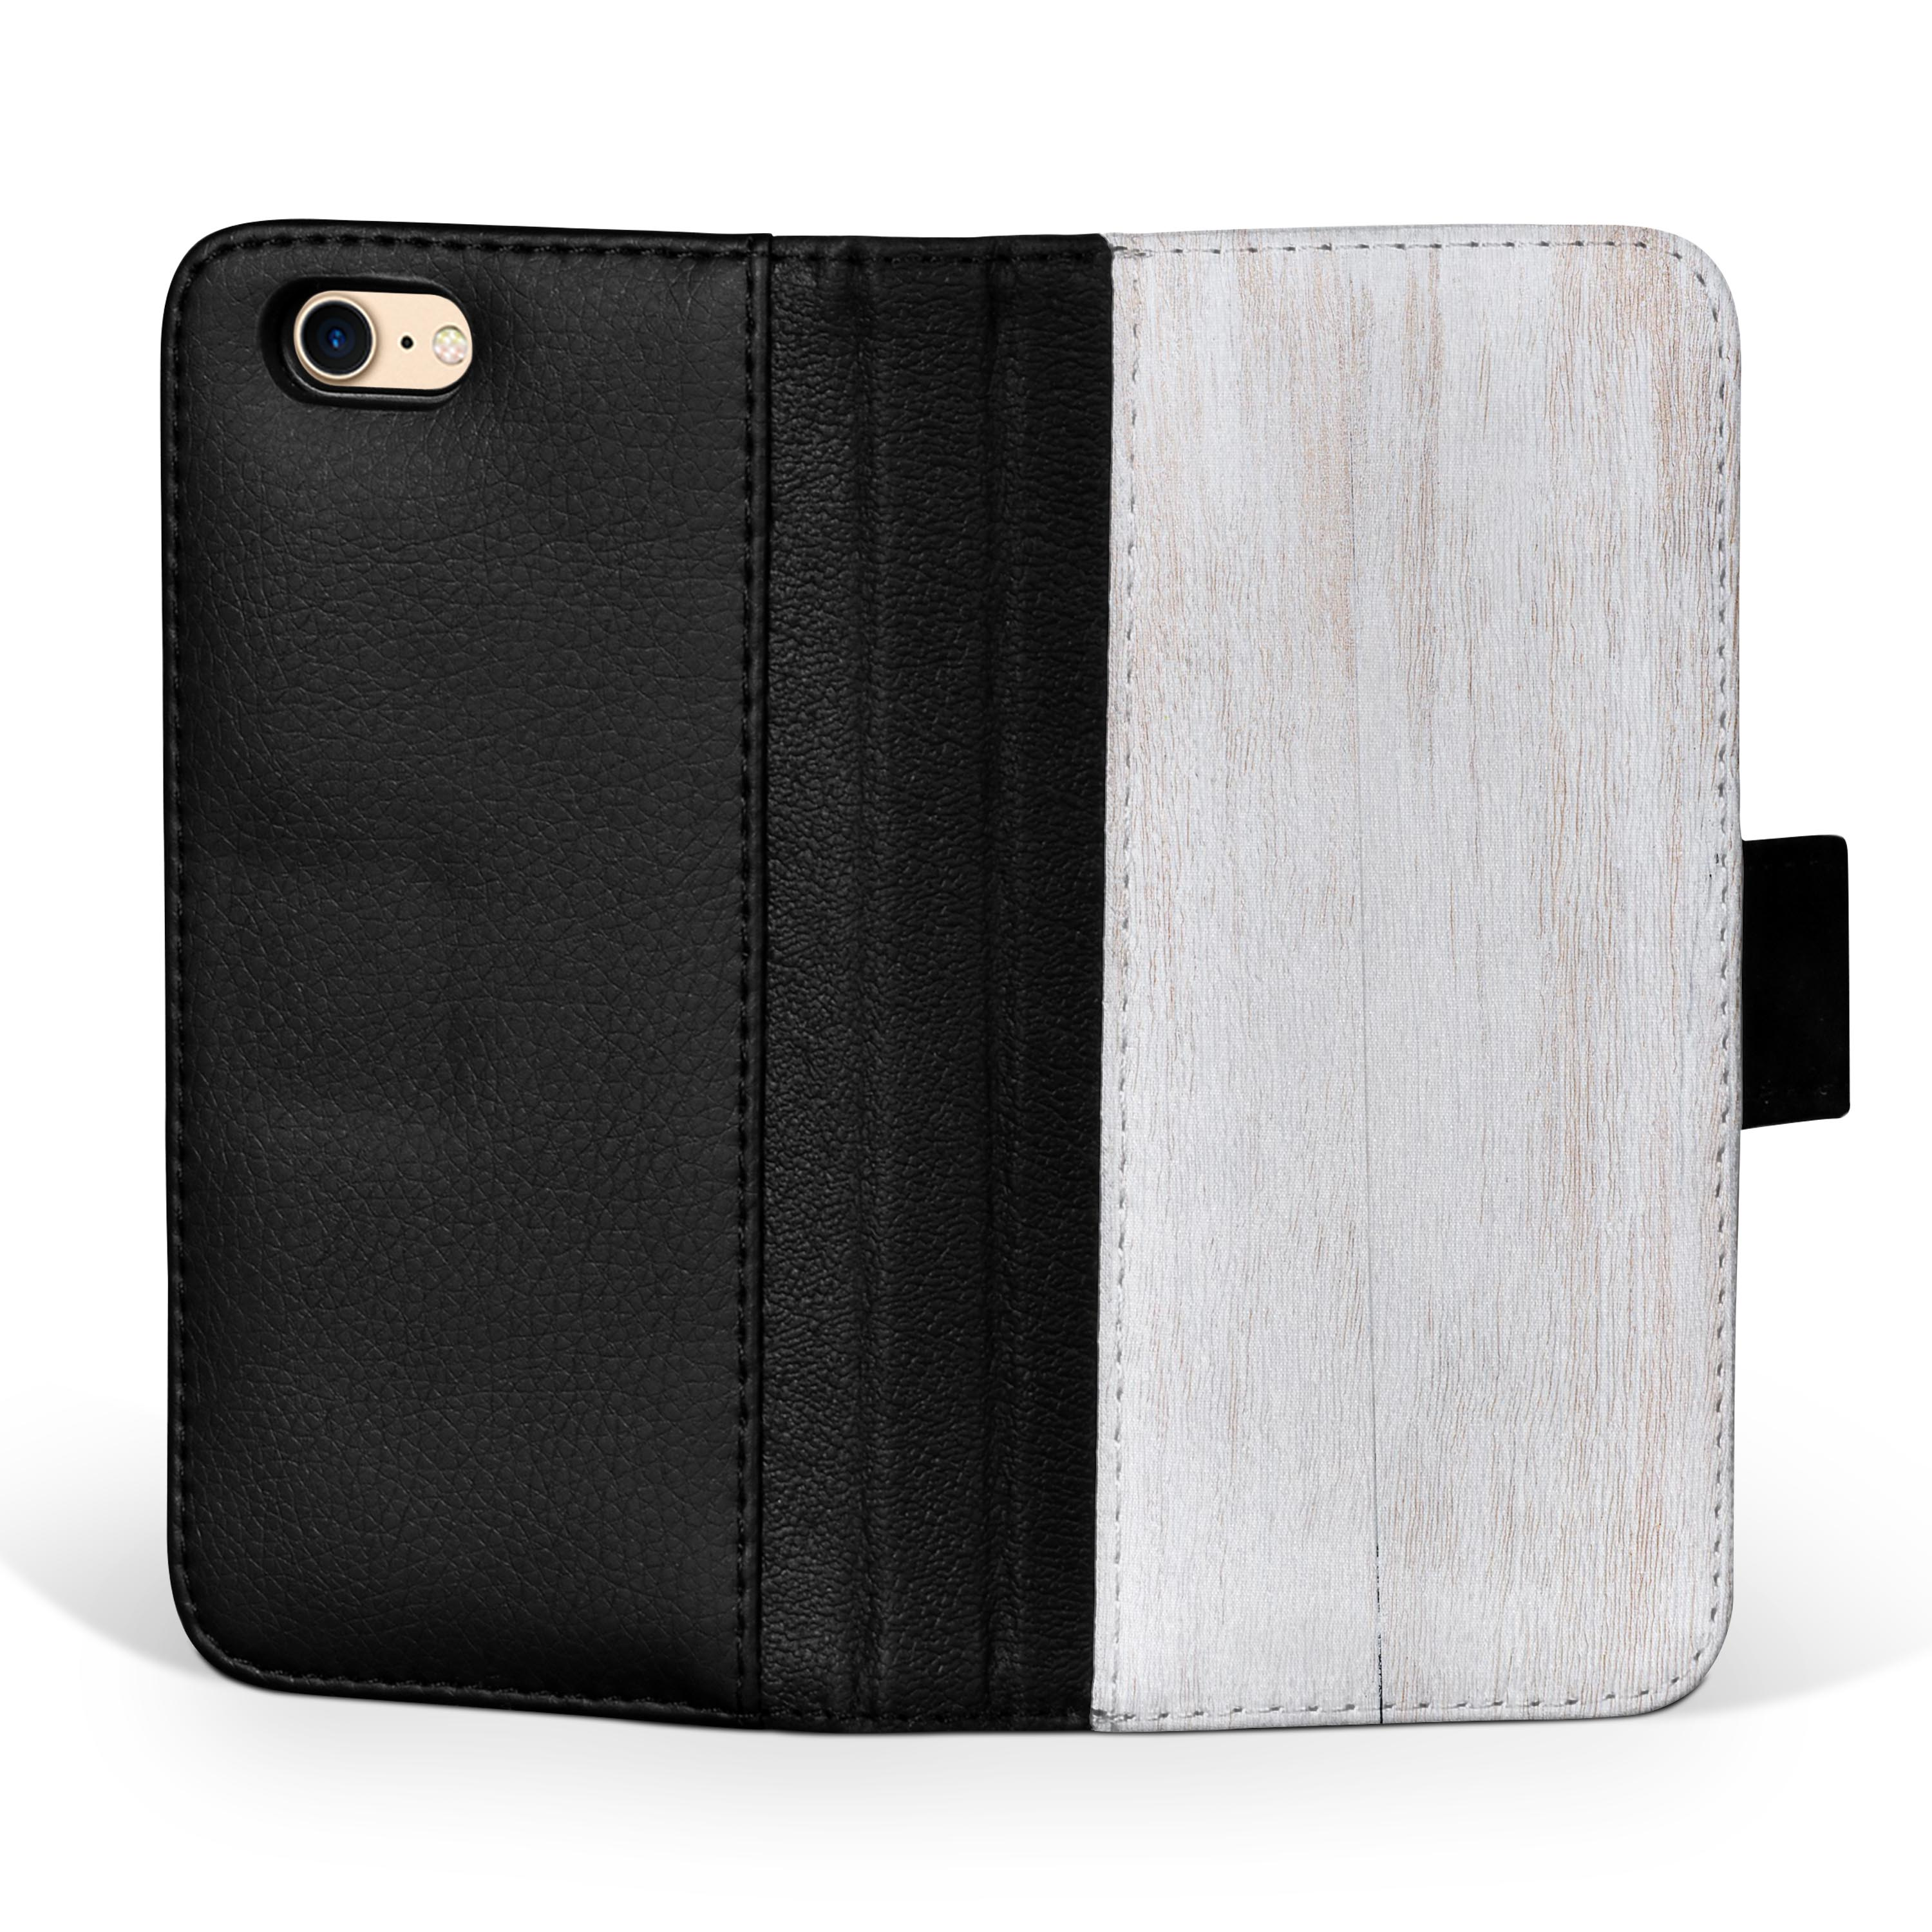 Light-White-Wood-Planks-iPhone-Leather-Credit-Card-Wallet-Case thumbnail 8